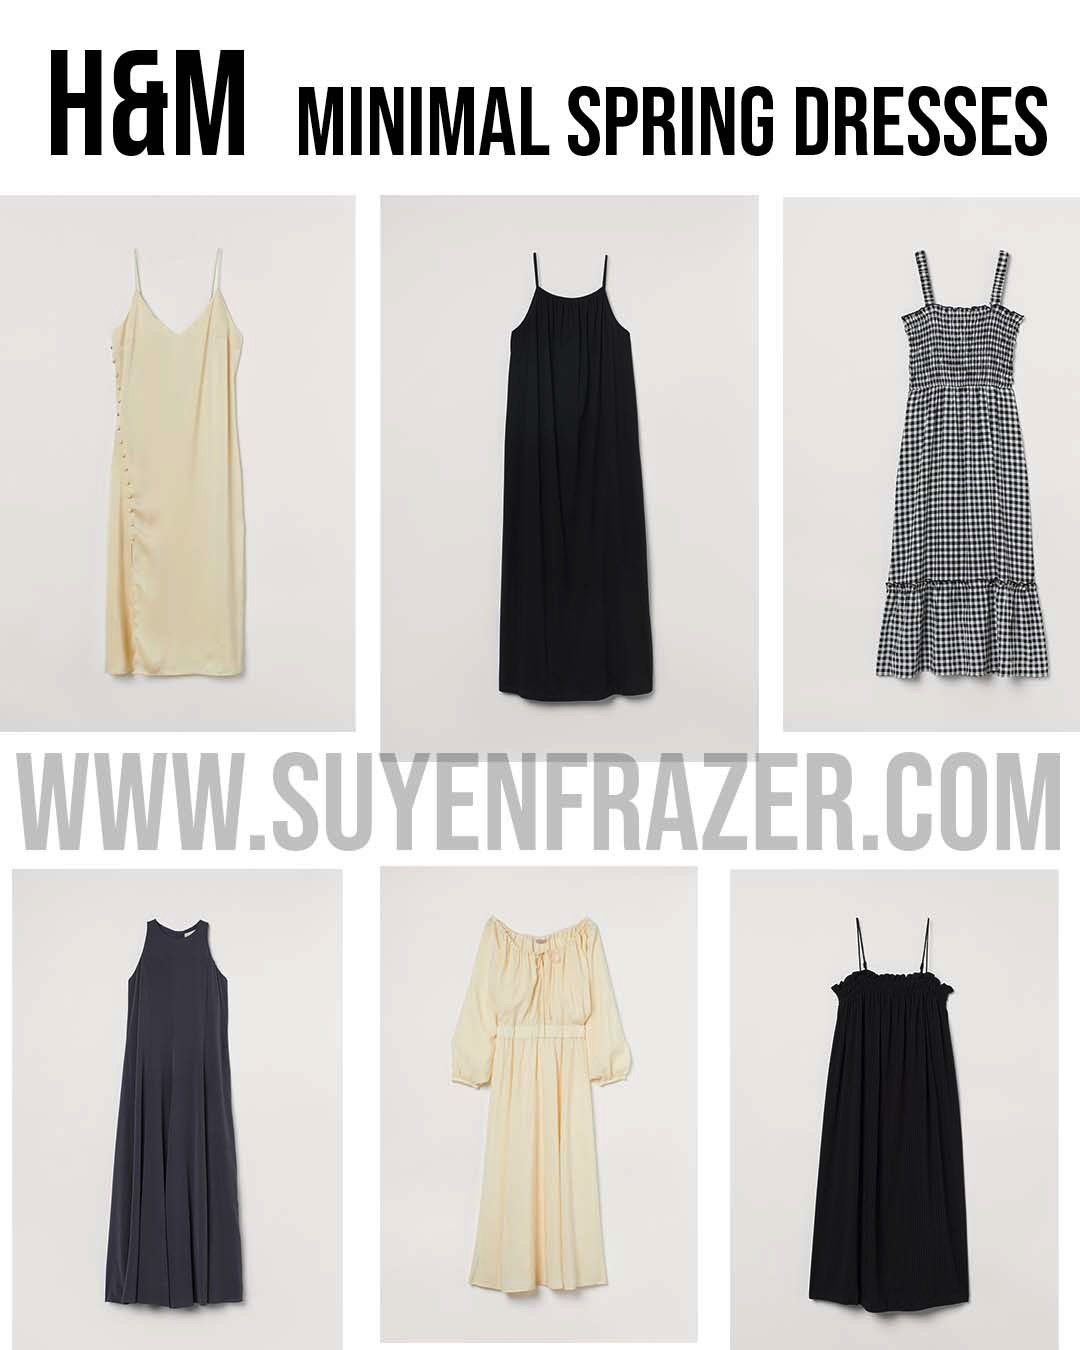 7 MUST-HAVES H&M DRESSES FOR SPRING